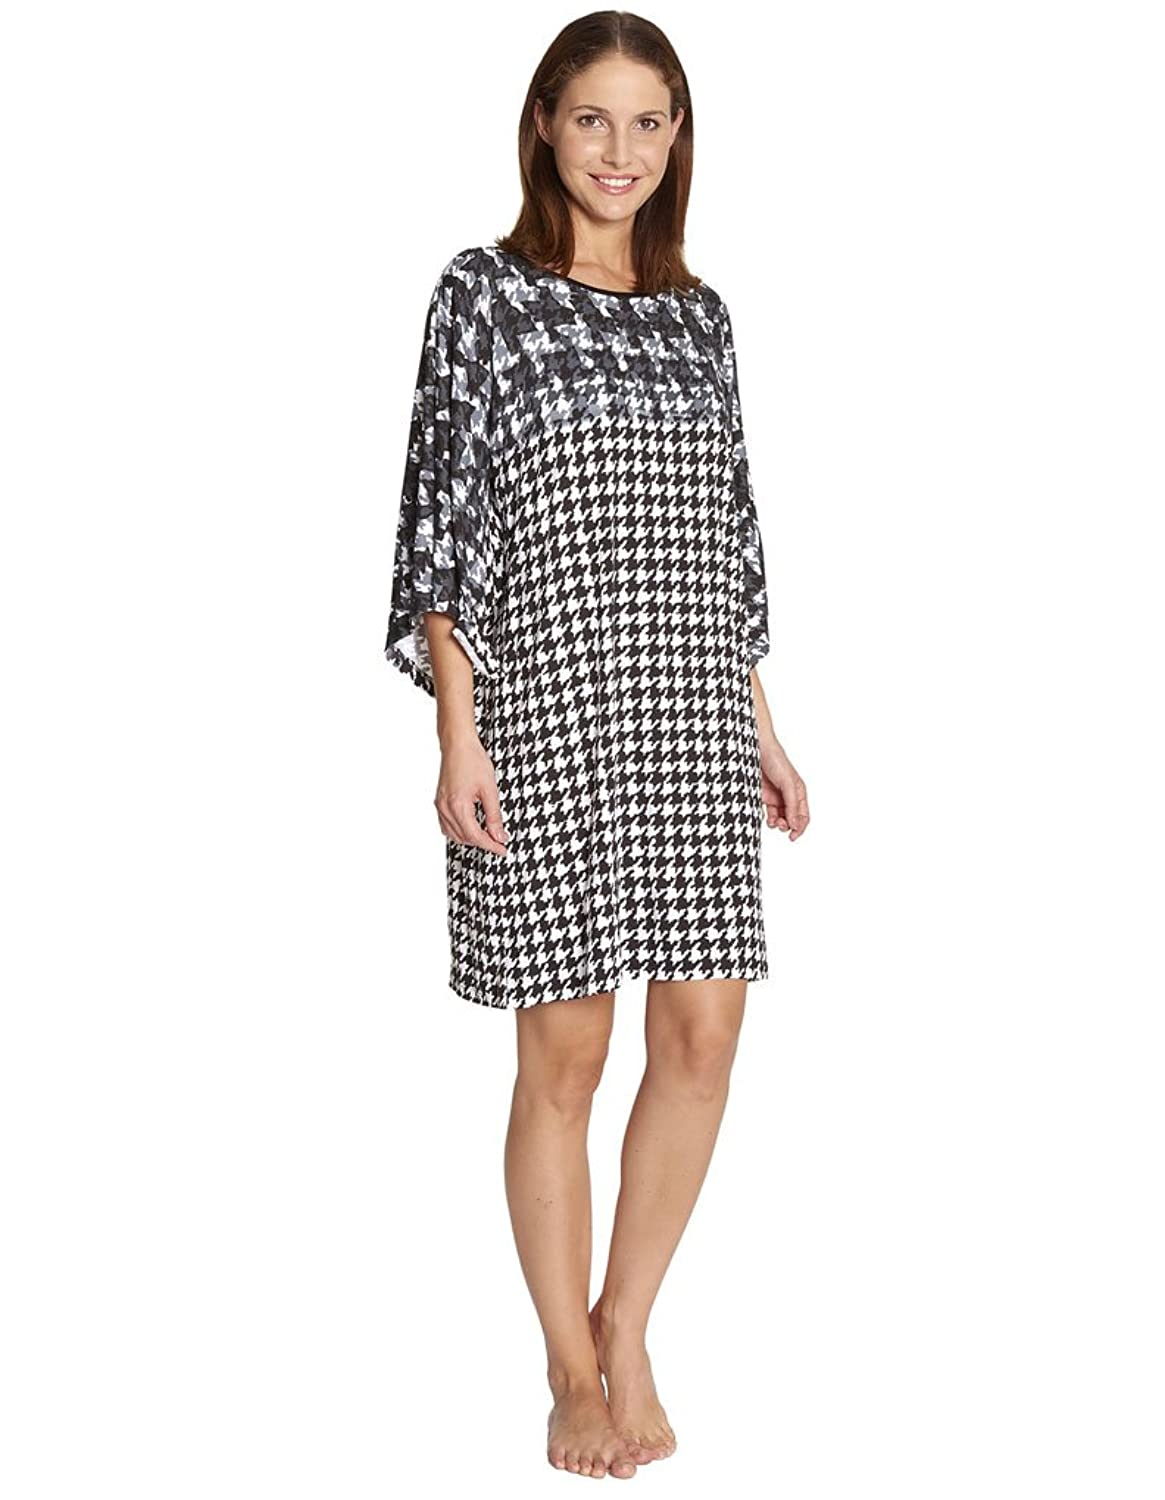 Feraud 3175068-10176 Women's Black and White Houndstooth Cover Up Beach Dress